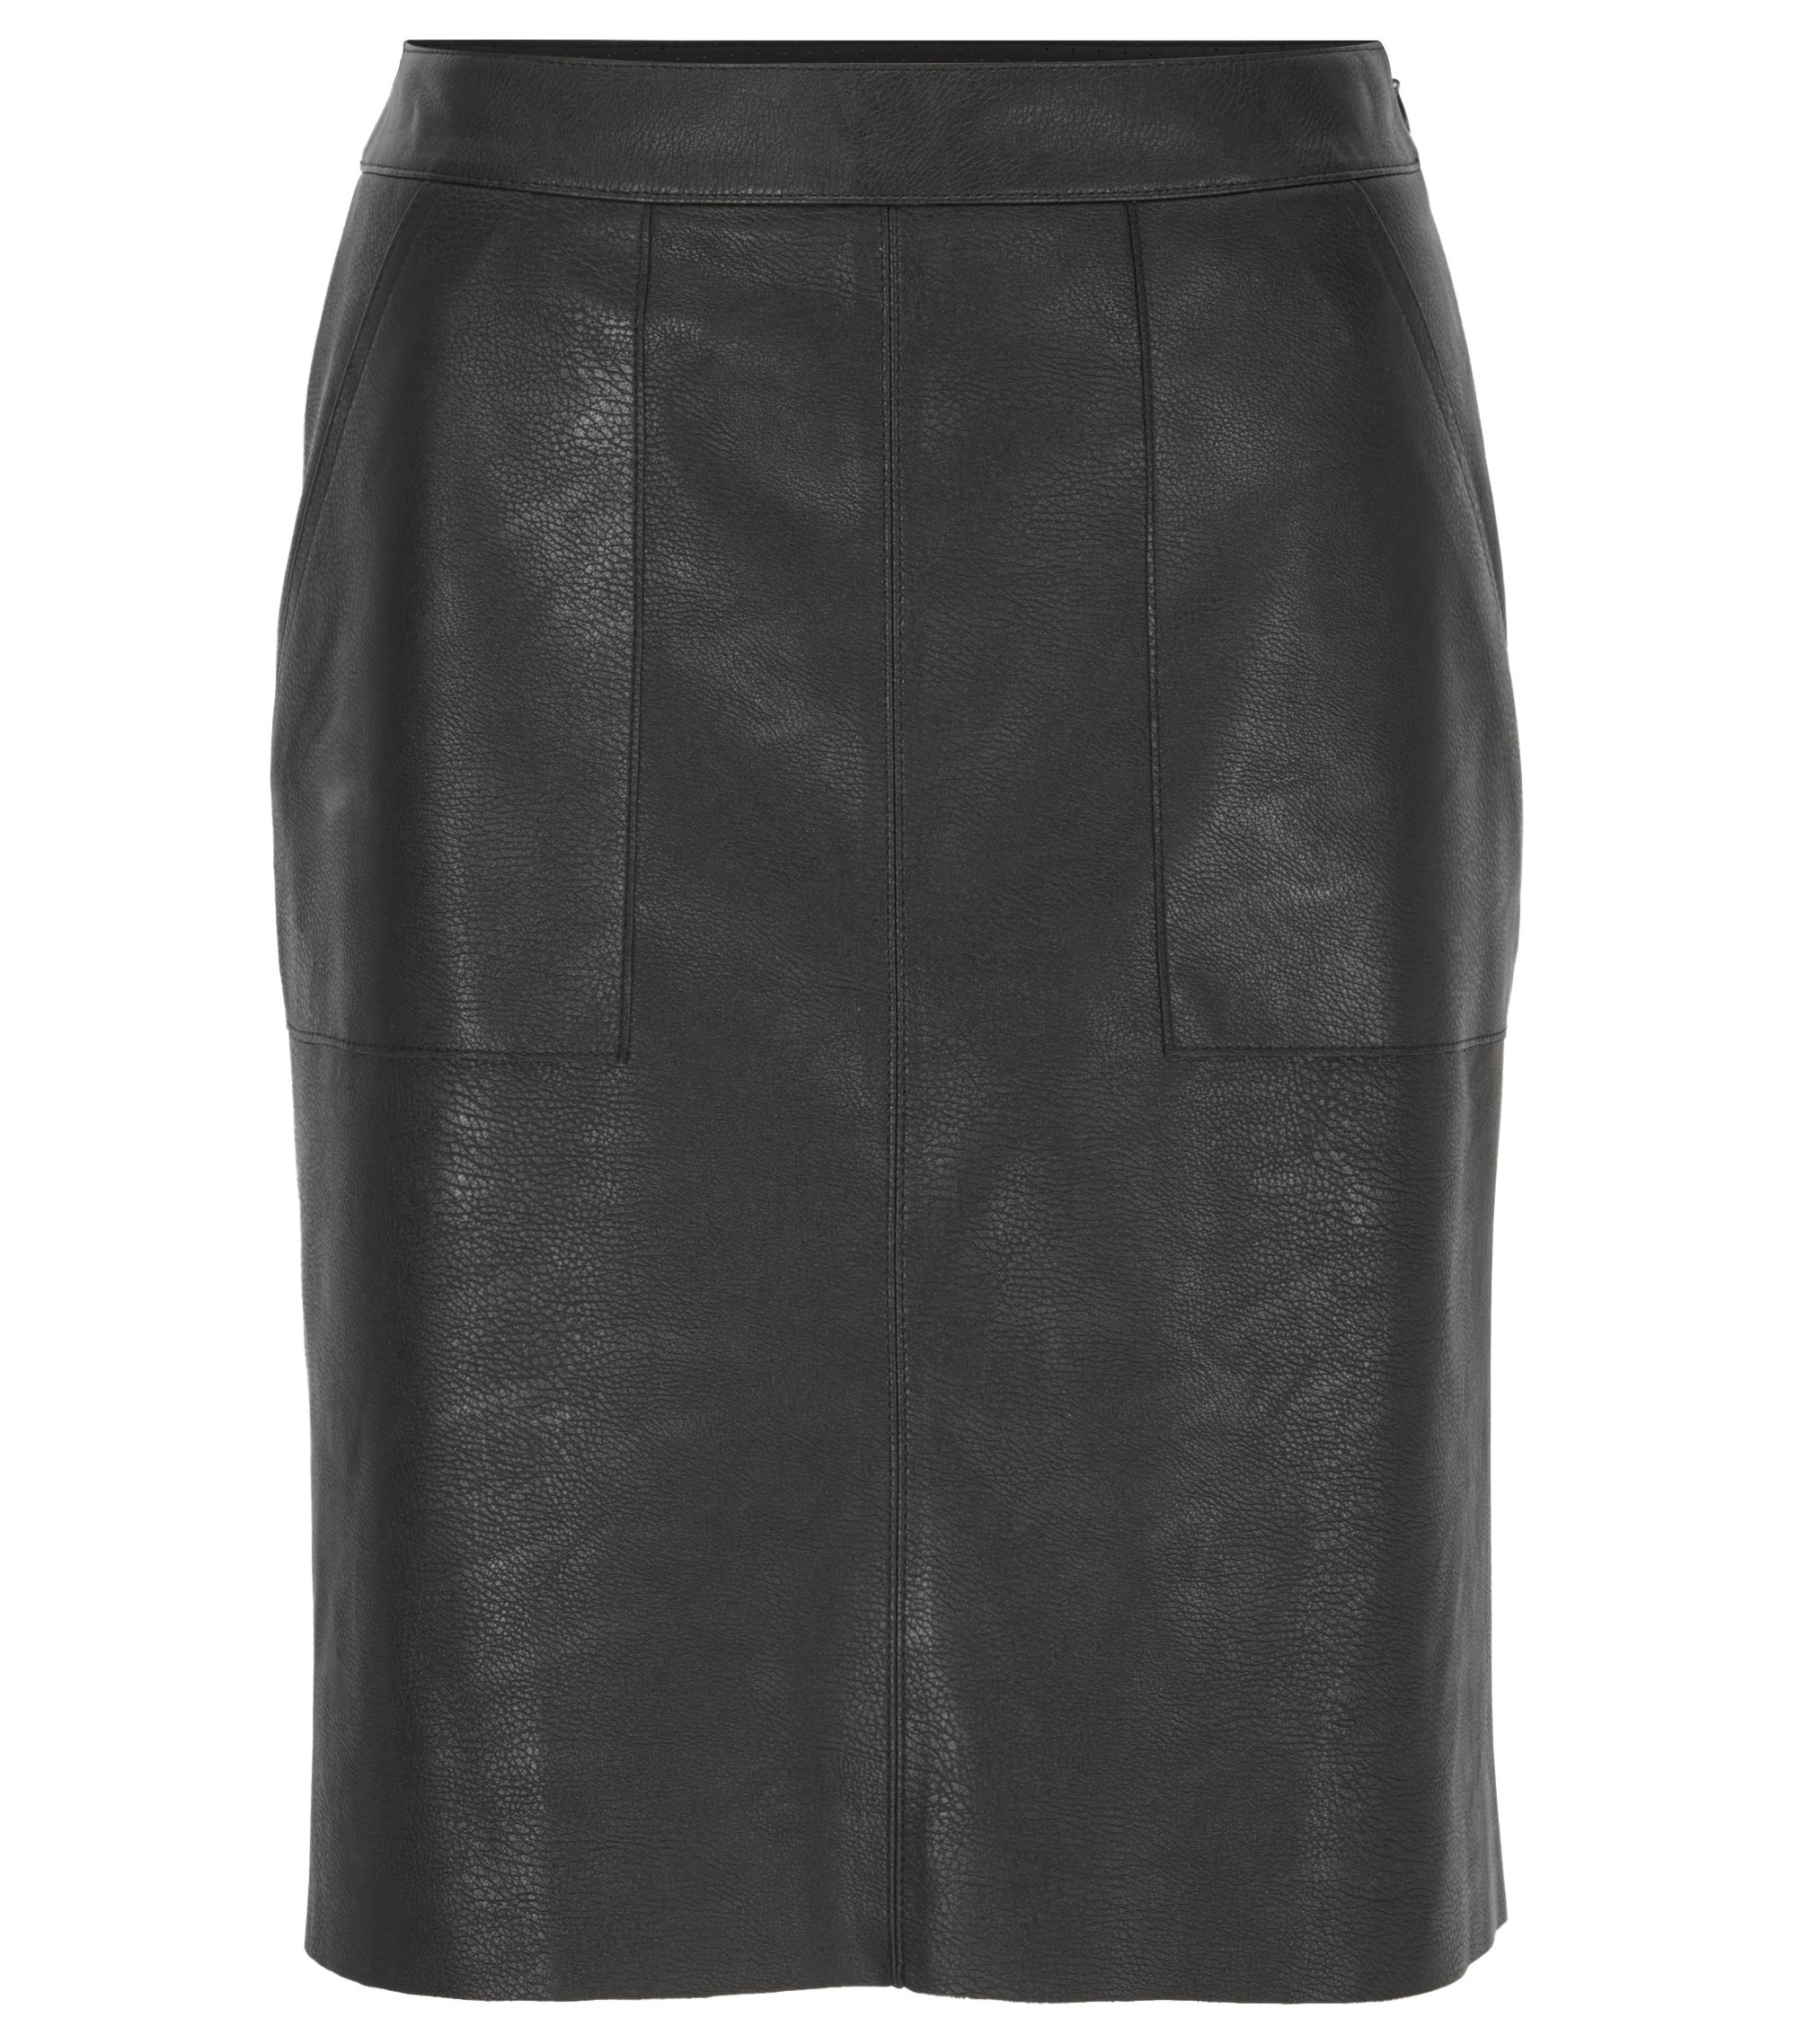 Faux-leather A-line skirt with patch pockets, Black